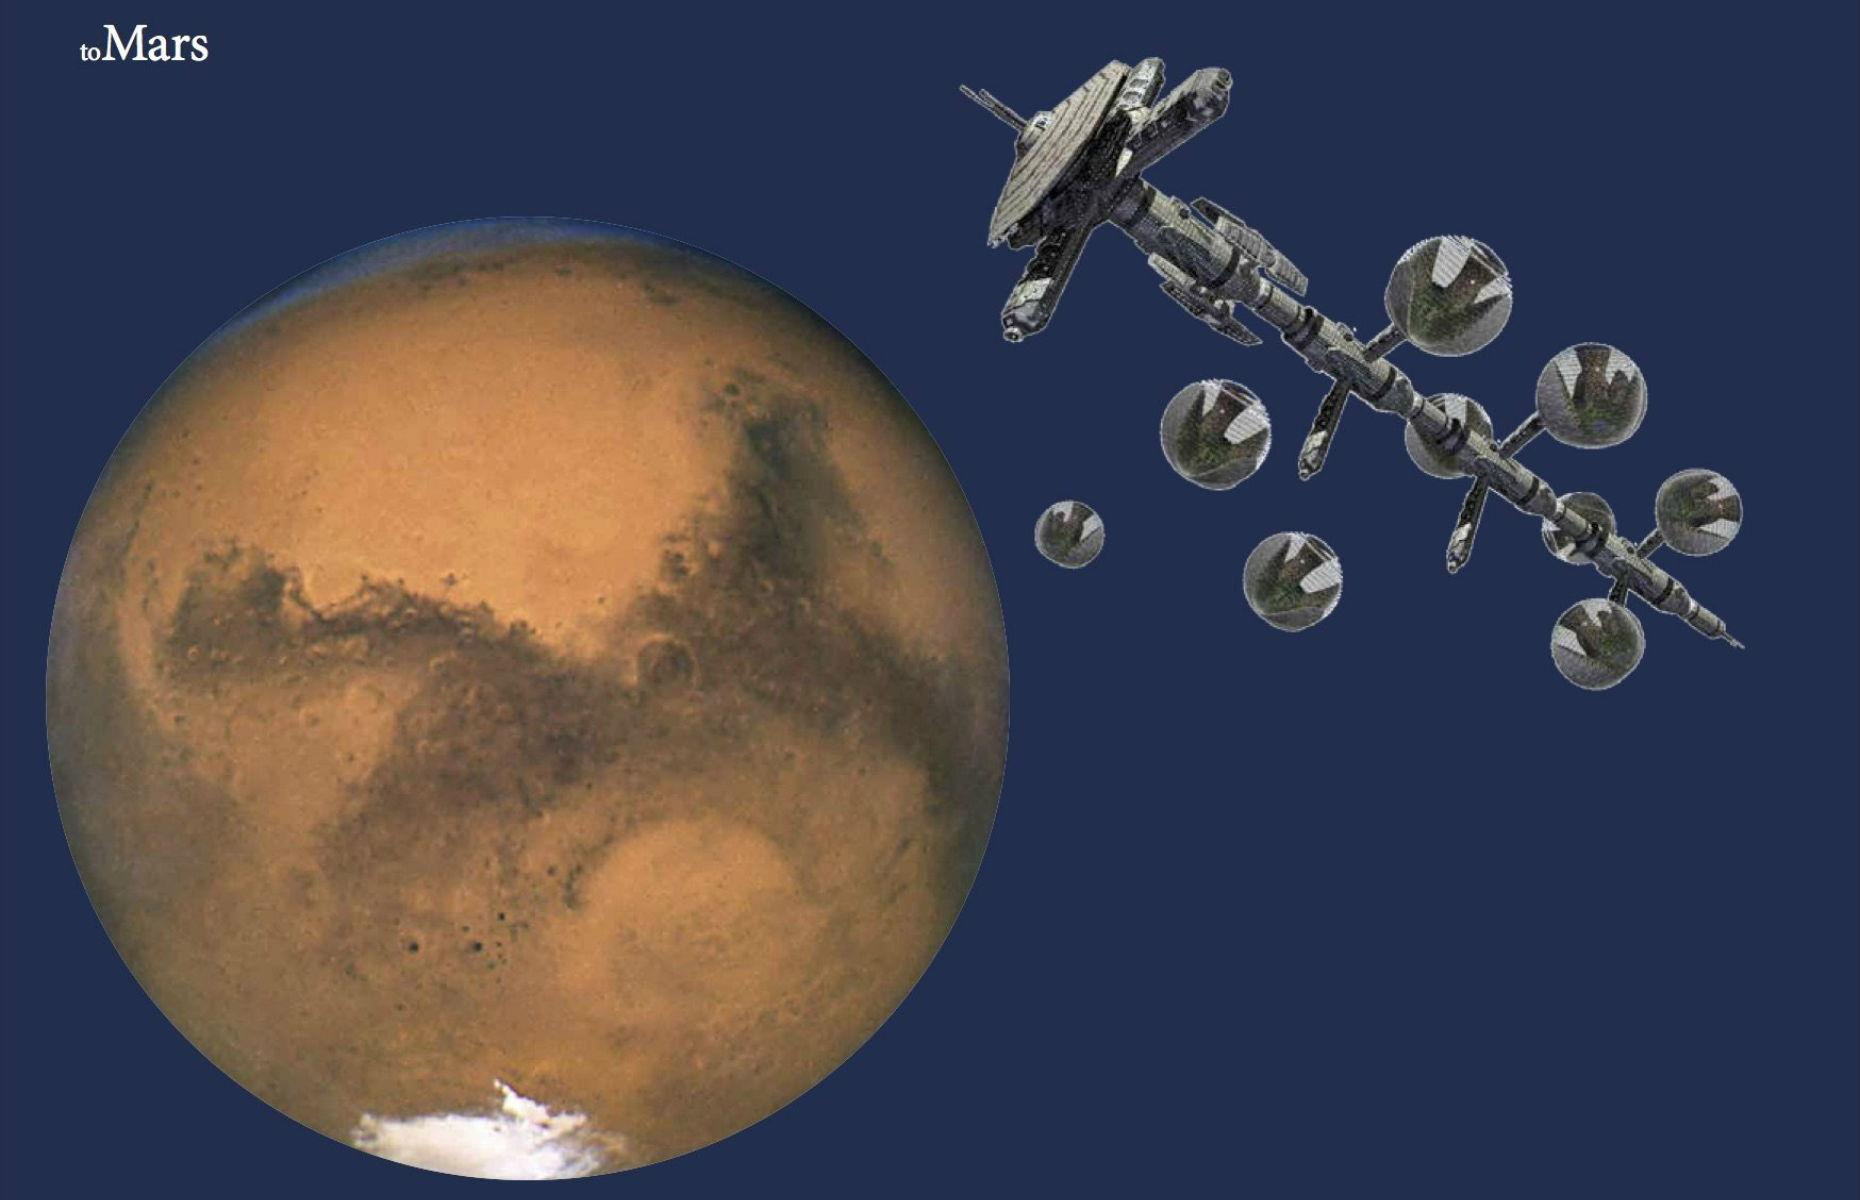 Revealed: what homes on Mars could actually look like